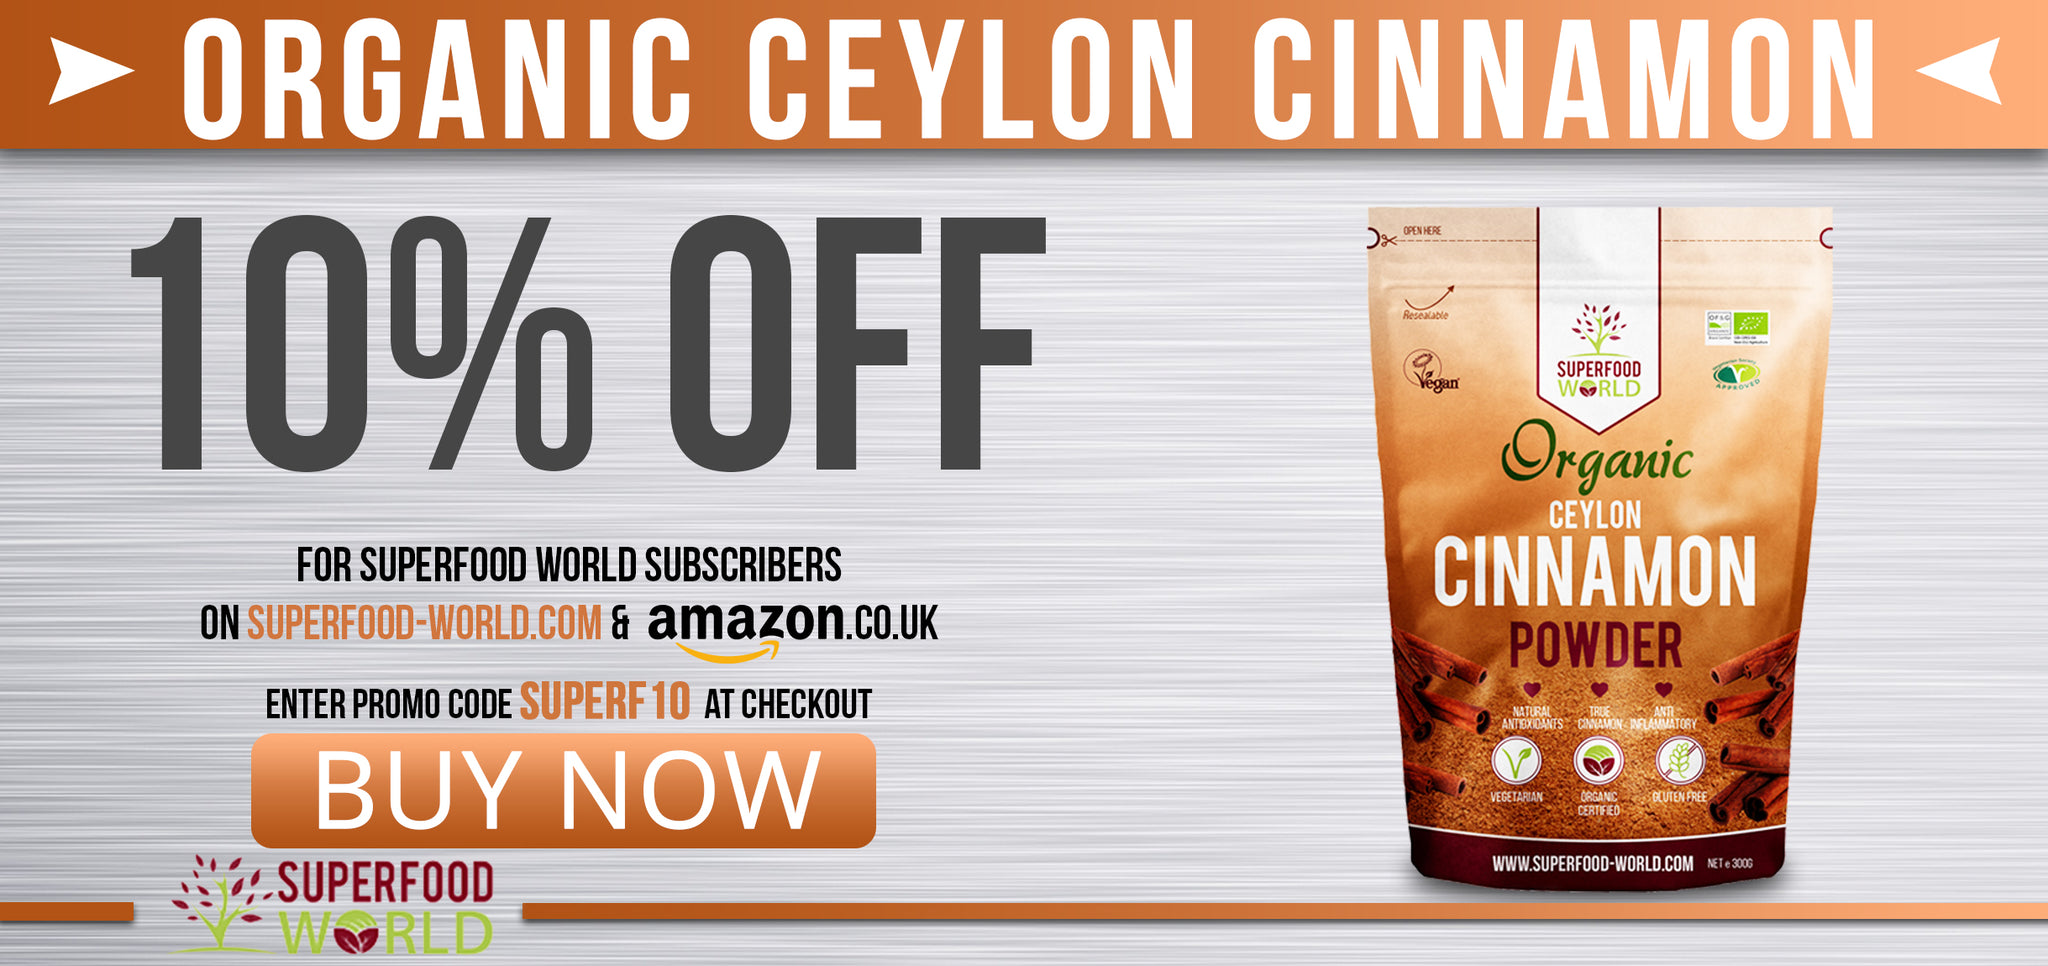 Buy organic Ceylon cinnamon powder